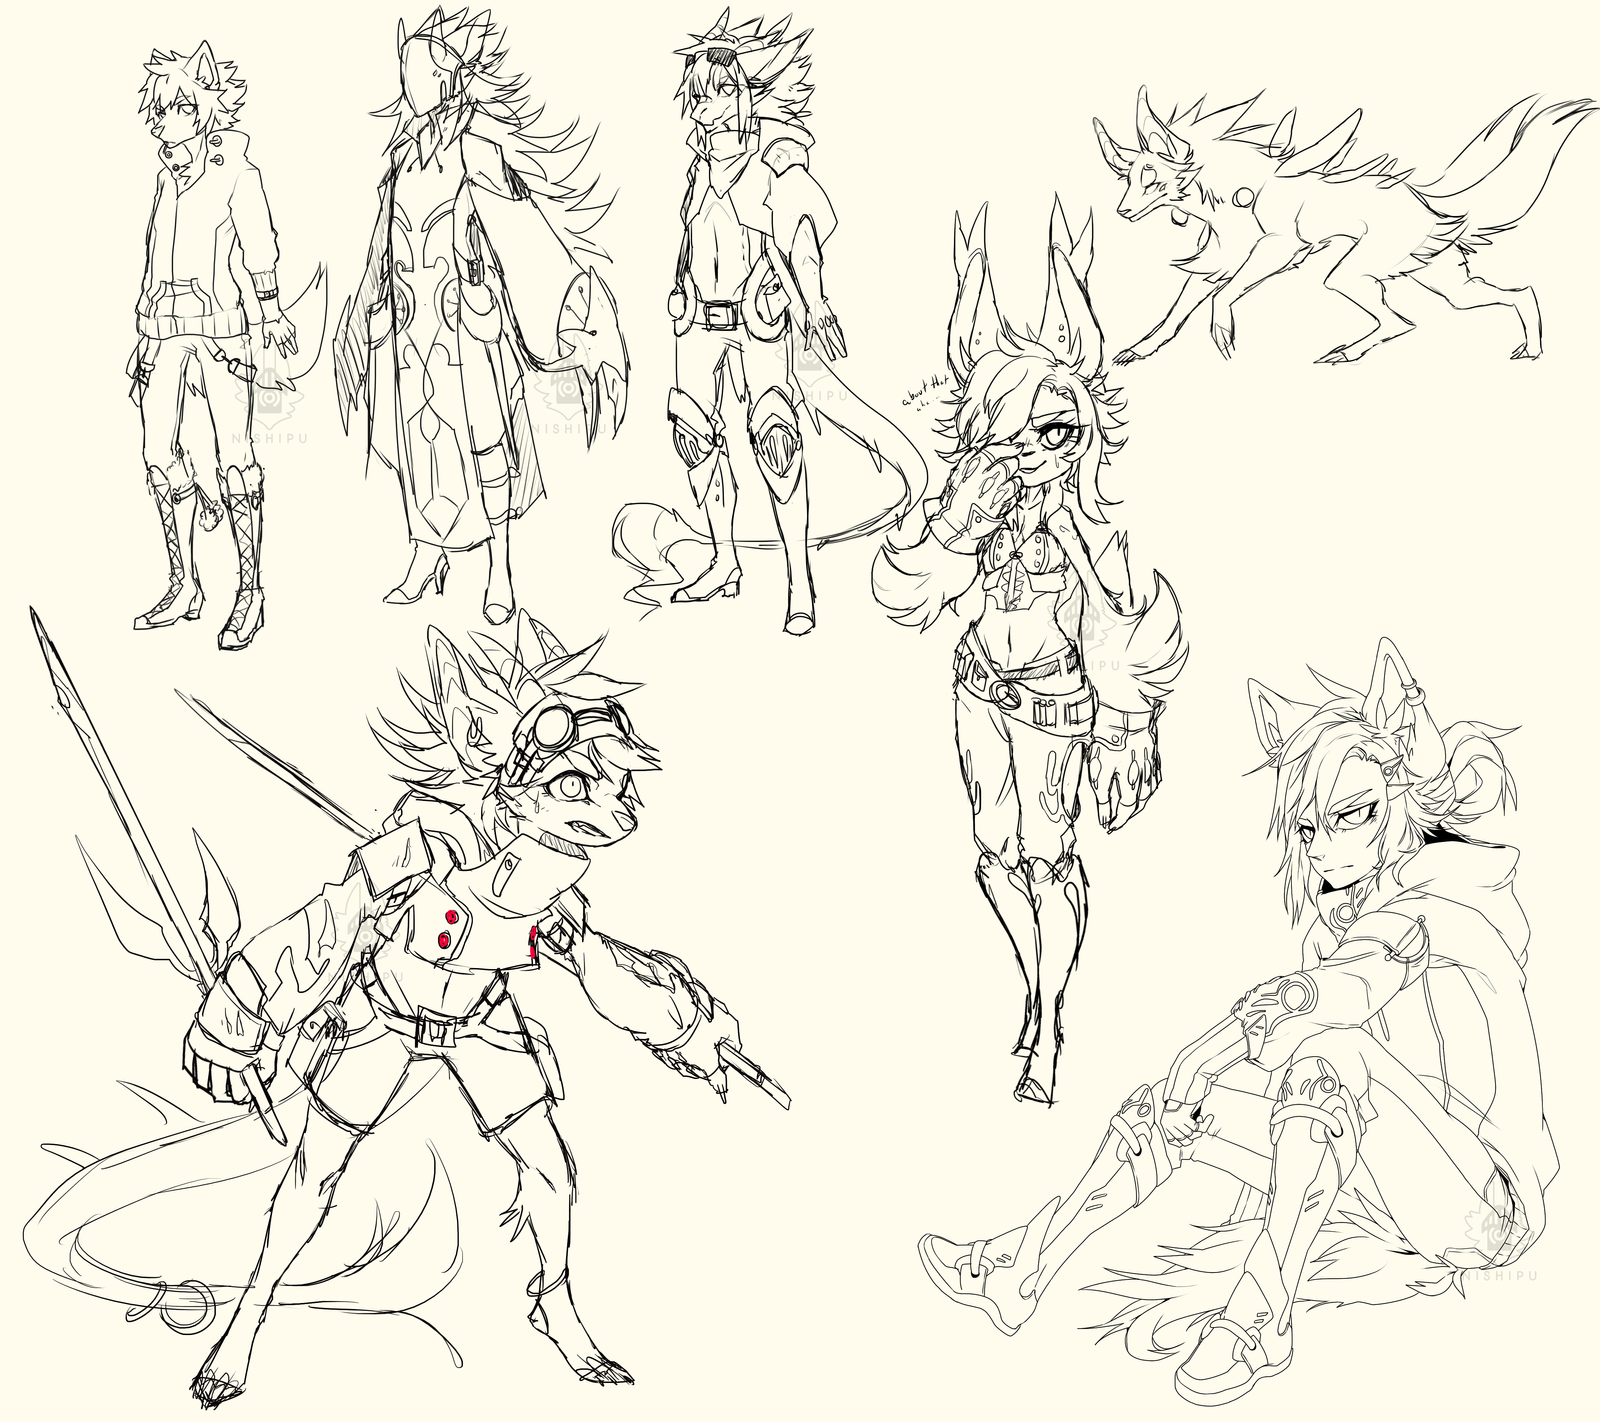 AUGHHHH WHATS THAT NAT, MORE WIPS? SO RARE WOW WHA by Nishipu